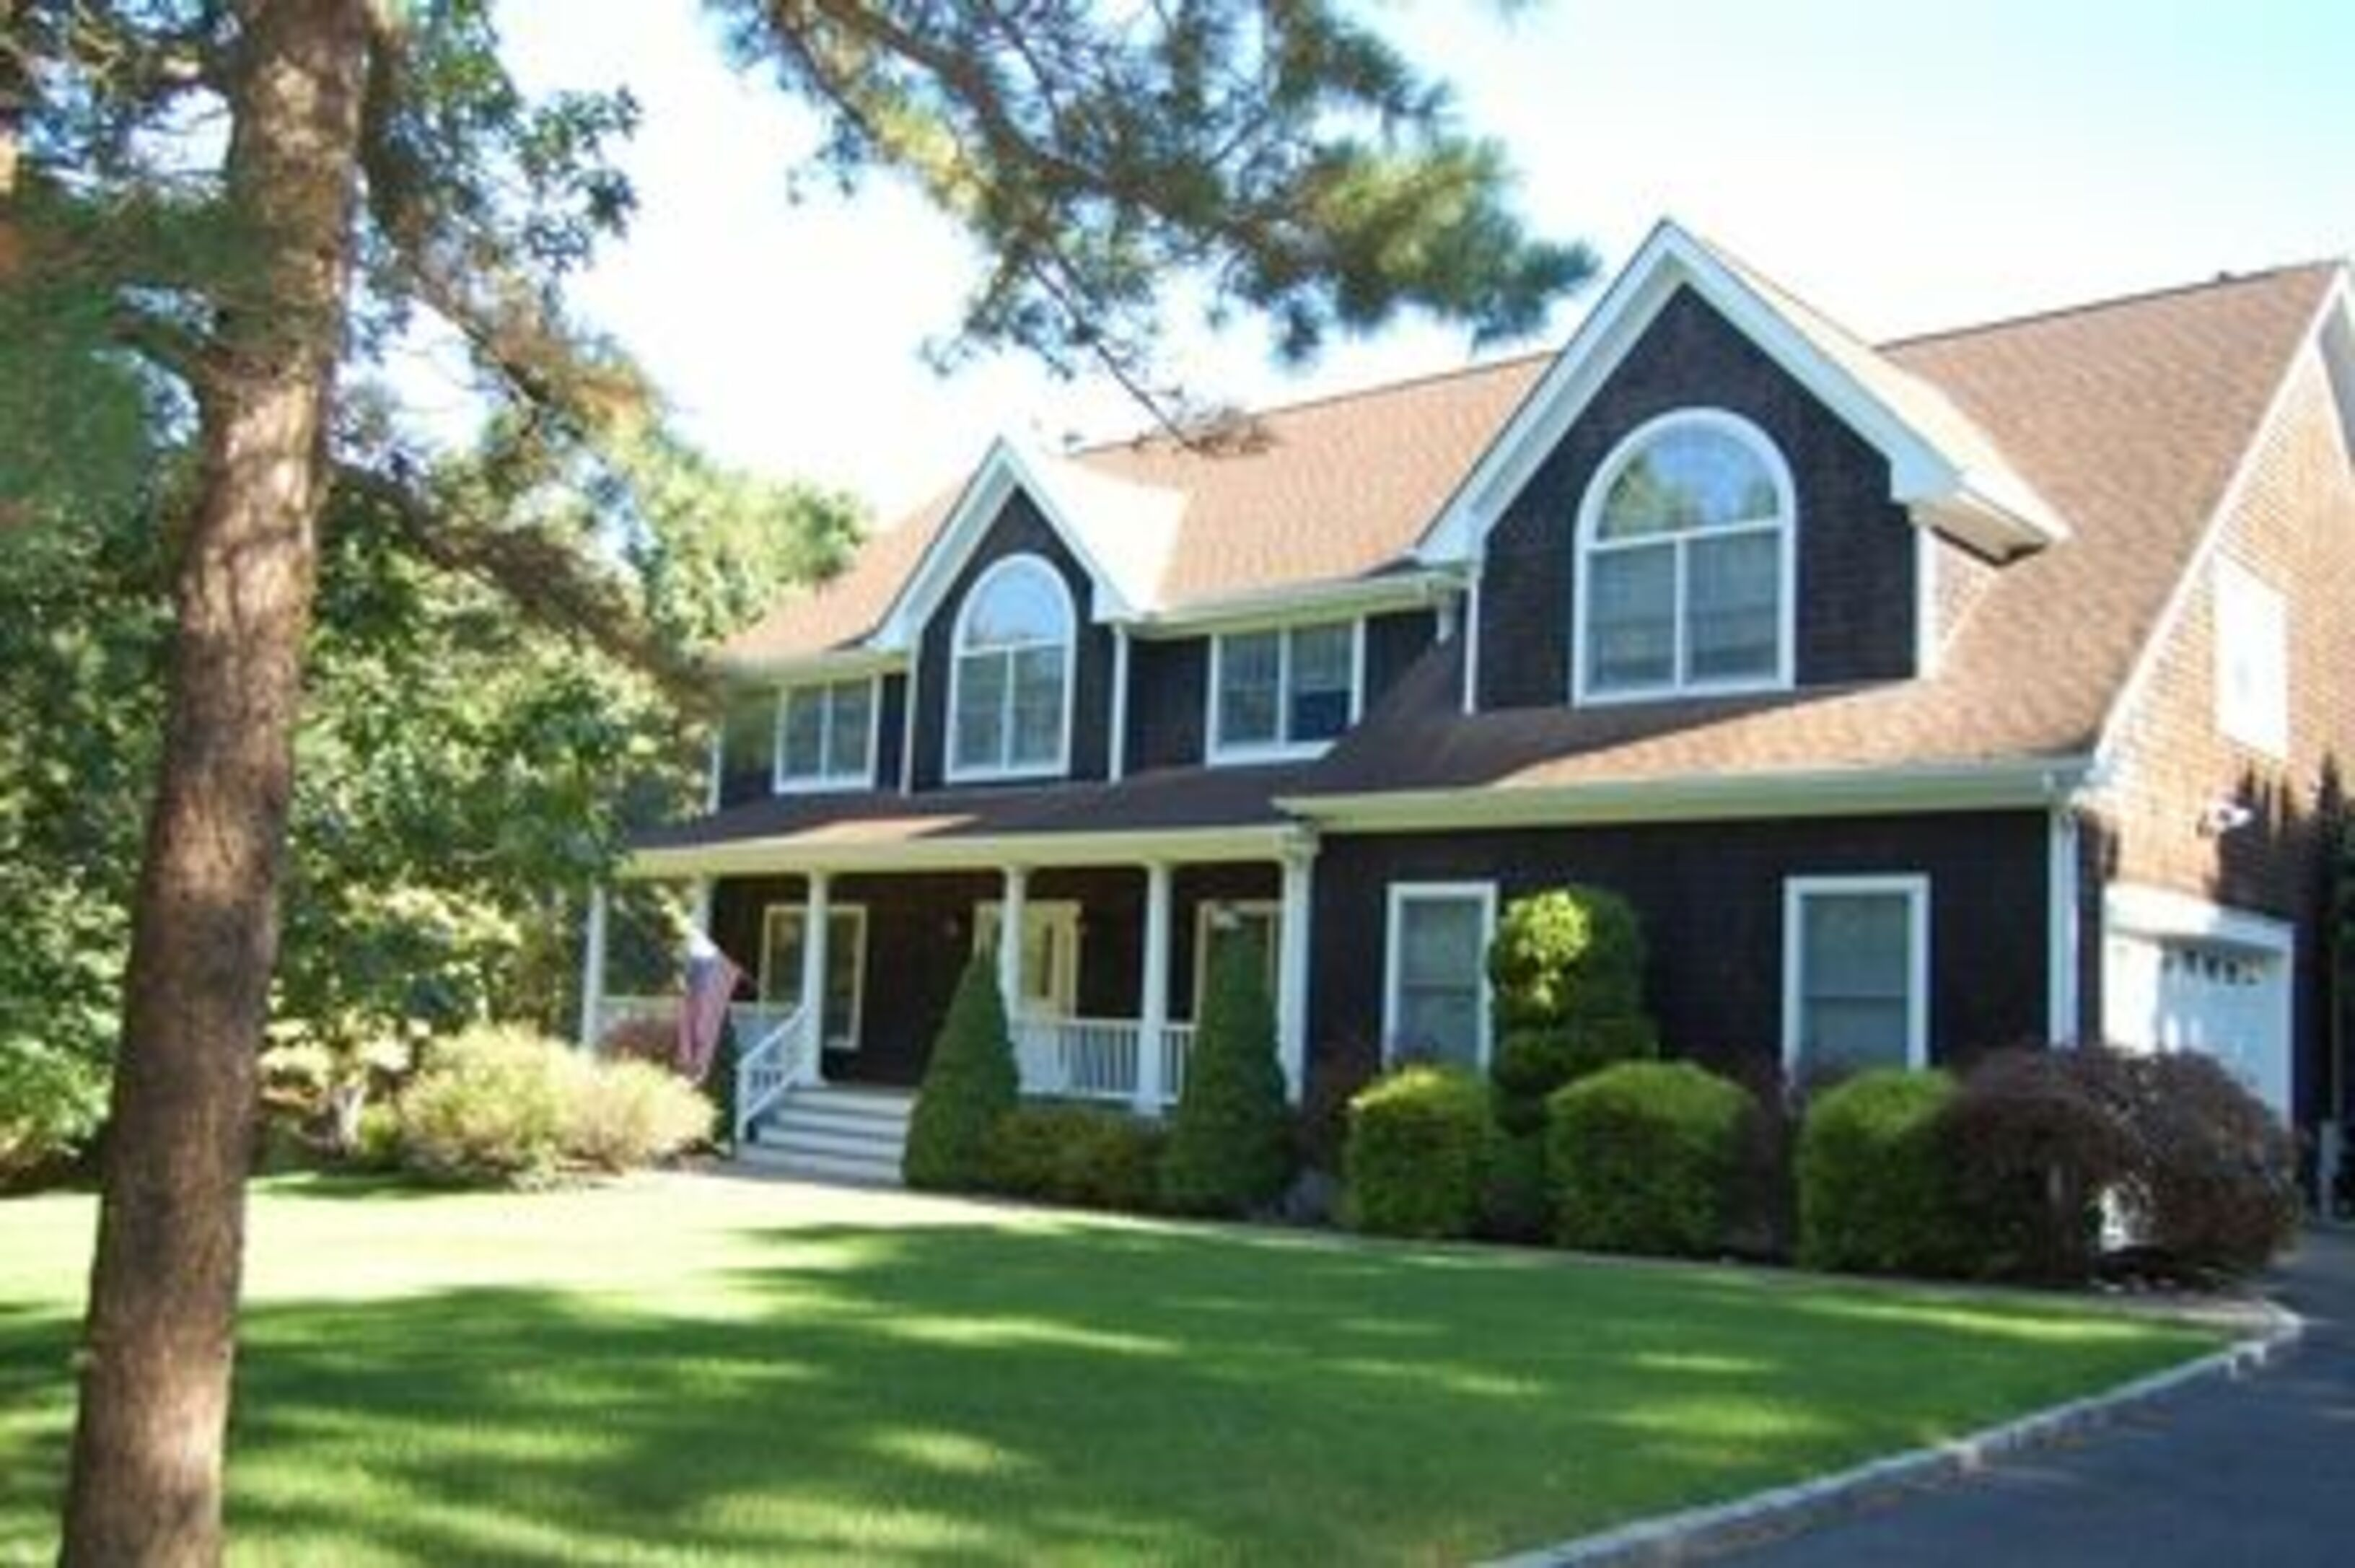 75 Corbett Dr - East Quogue, New York